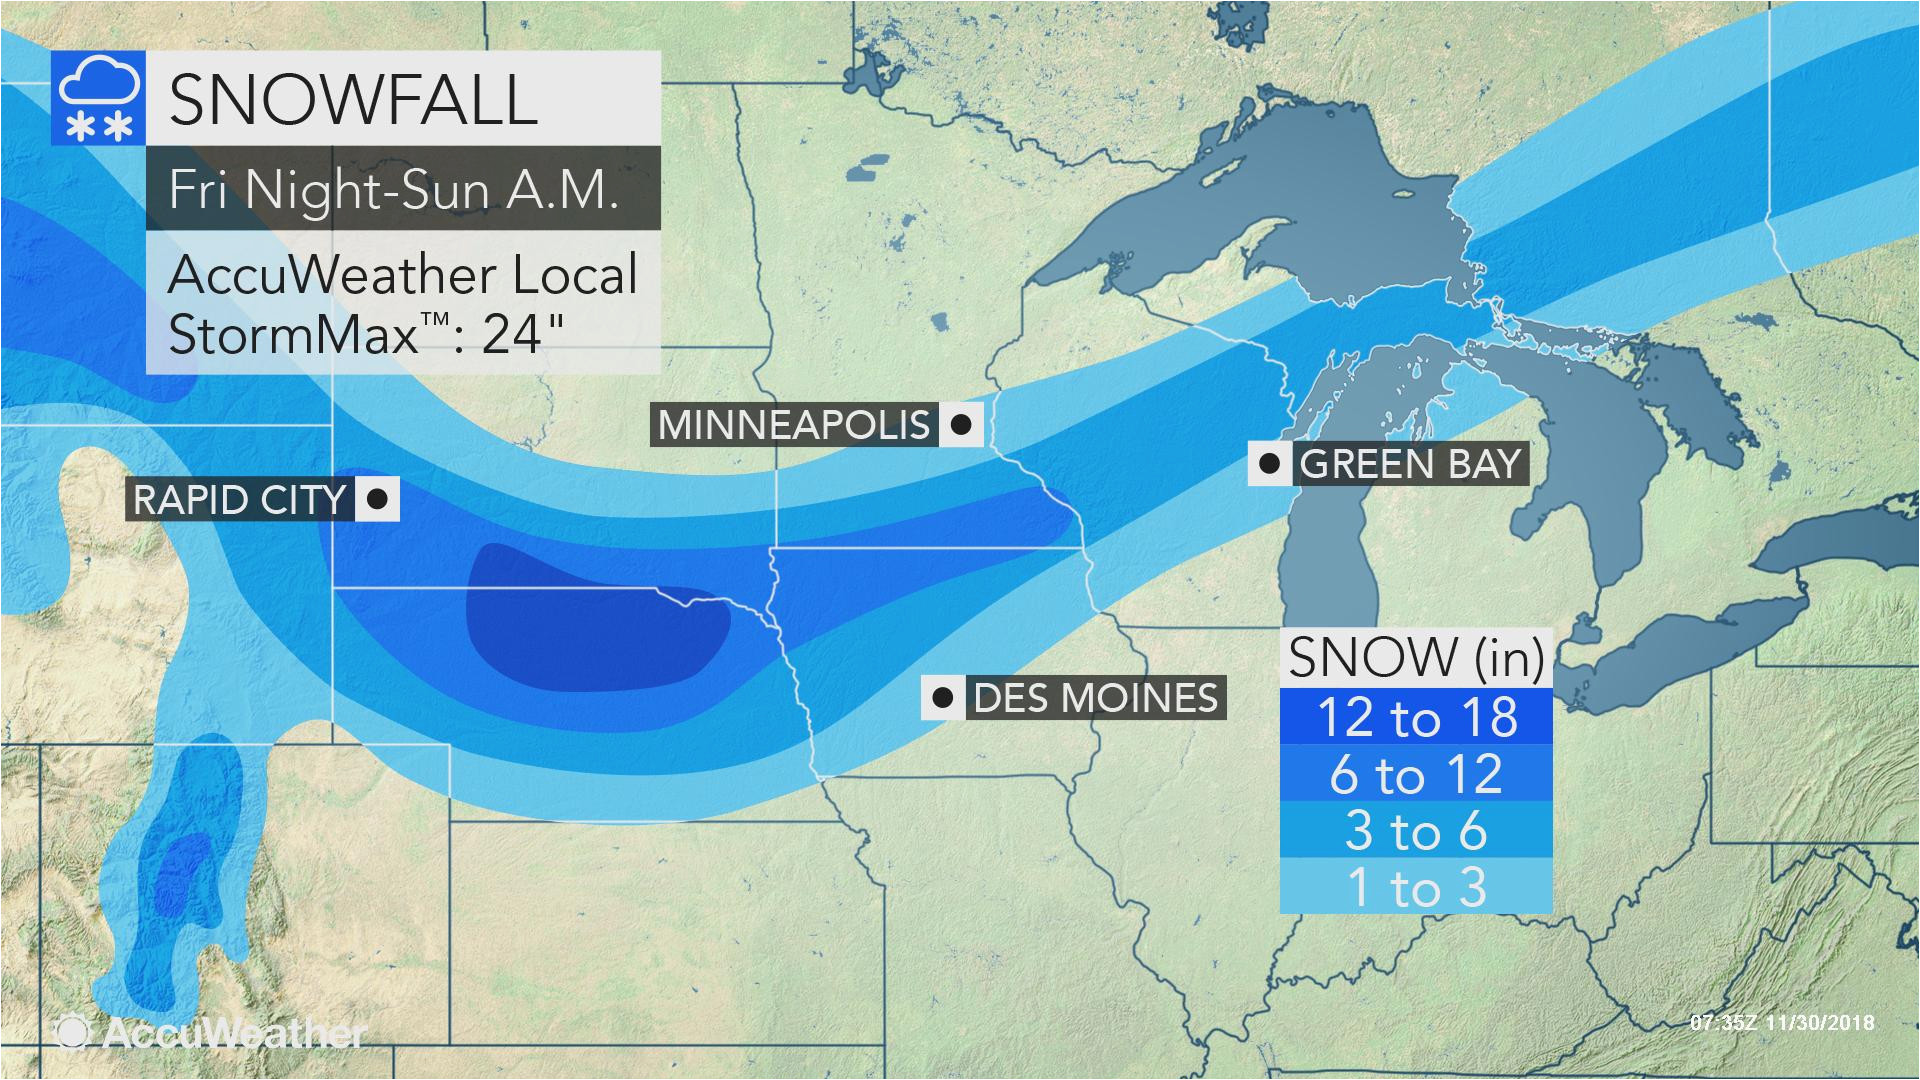 2nd blizzard of season to eye north central us during 1st weekend of